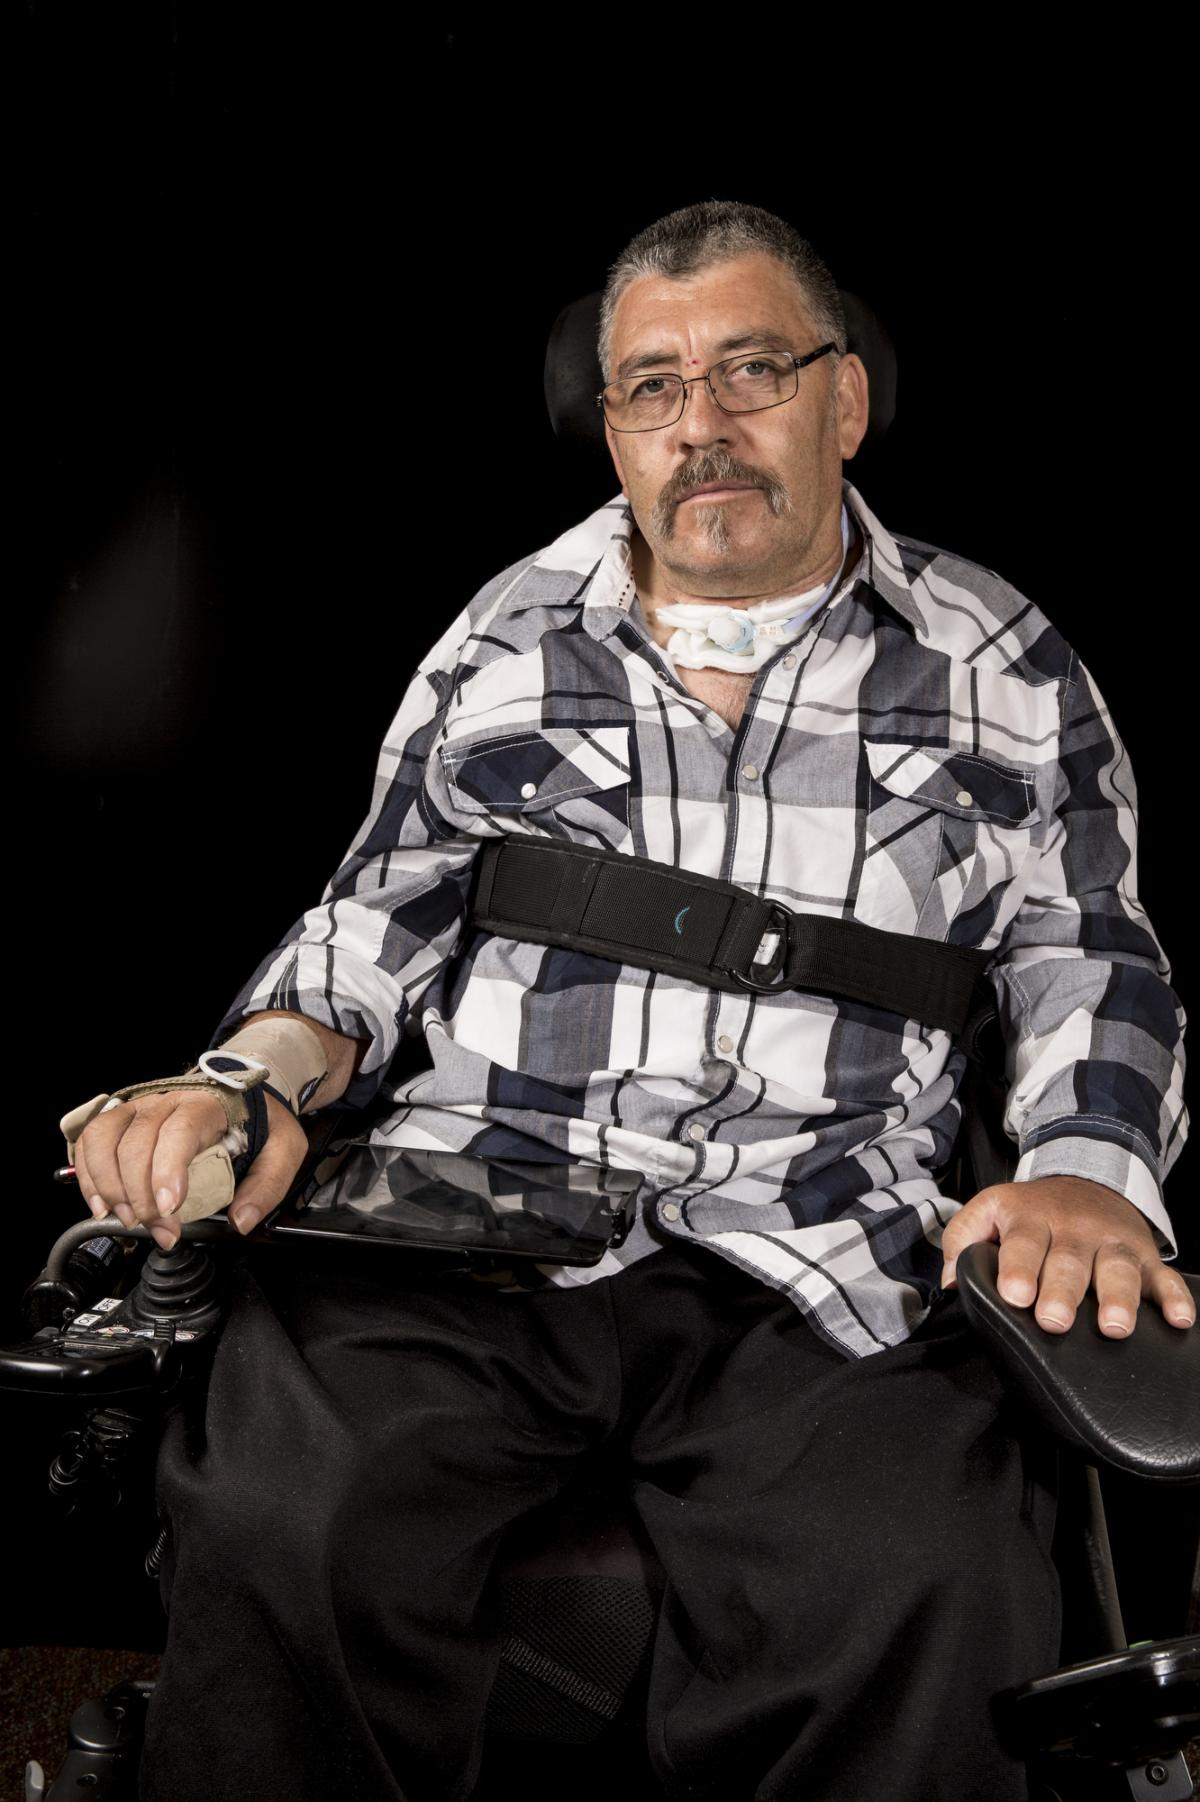 Nicolas Mercado's doctor prescribed $170,000 in home modifications so he would be able to return home to live, but when his insurer went bankrupt, his case went to the California Insurance Guarantee Association, a state agency that then rejected the modif